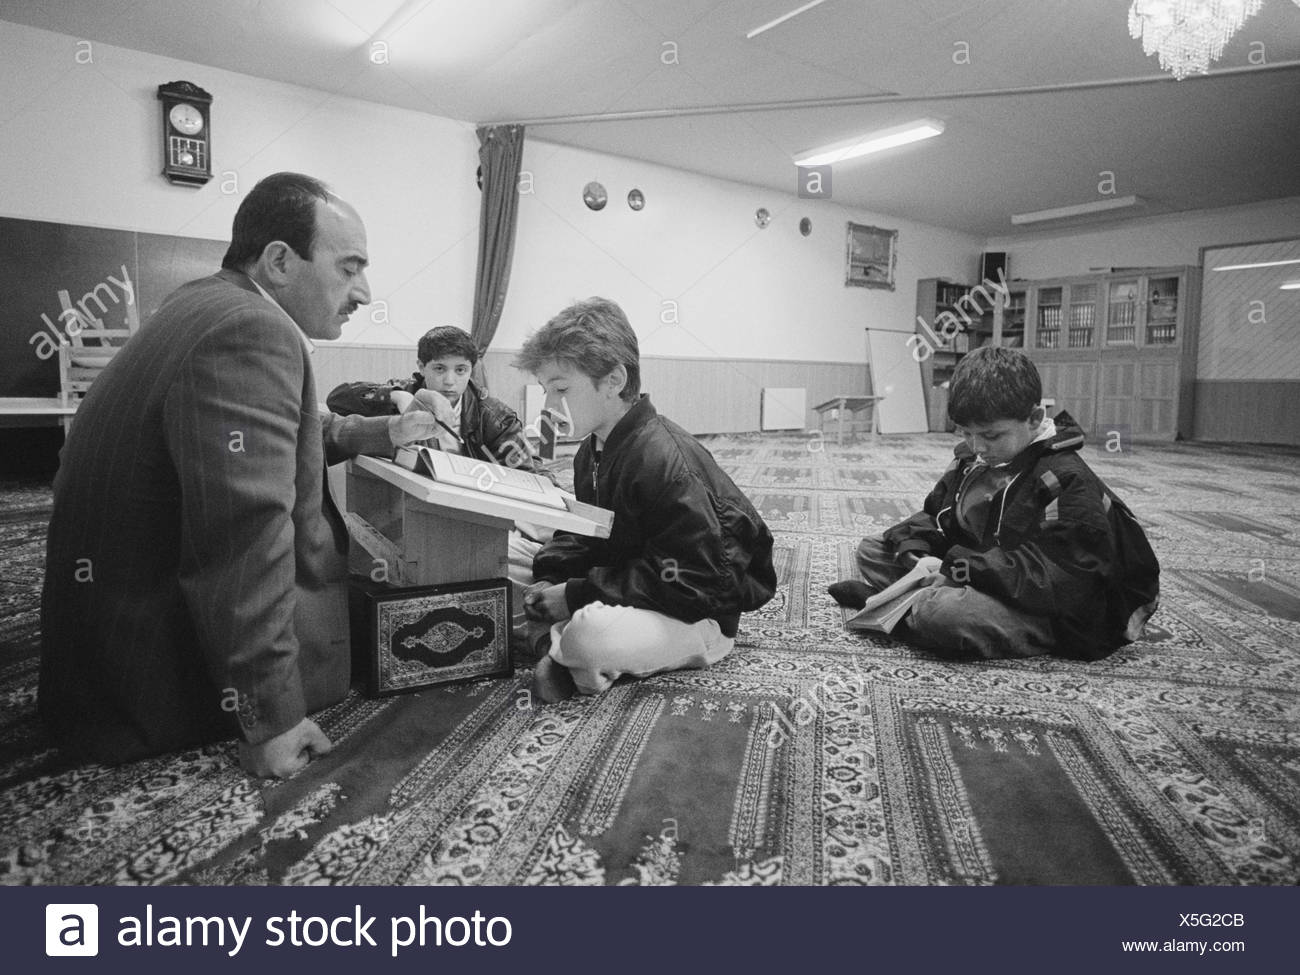 Coranschool in Rinkeby 1991 - Stock Image